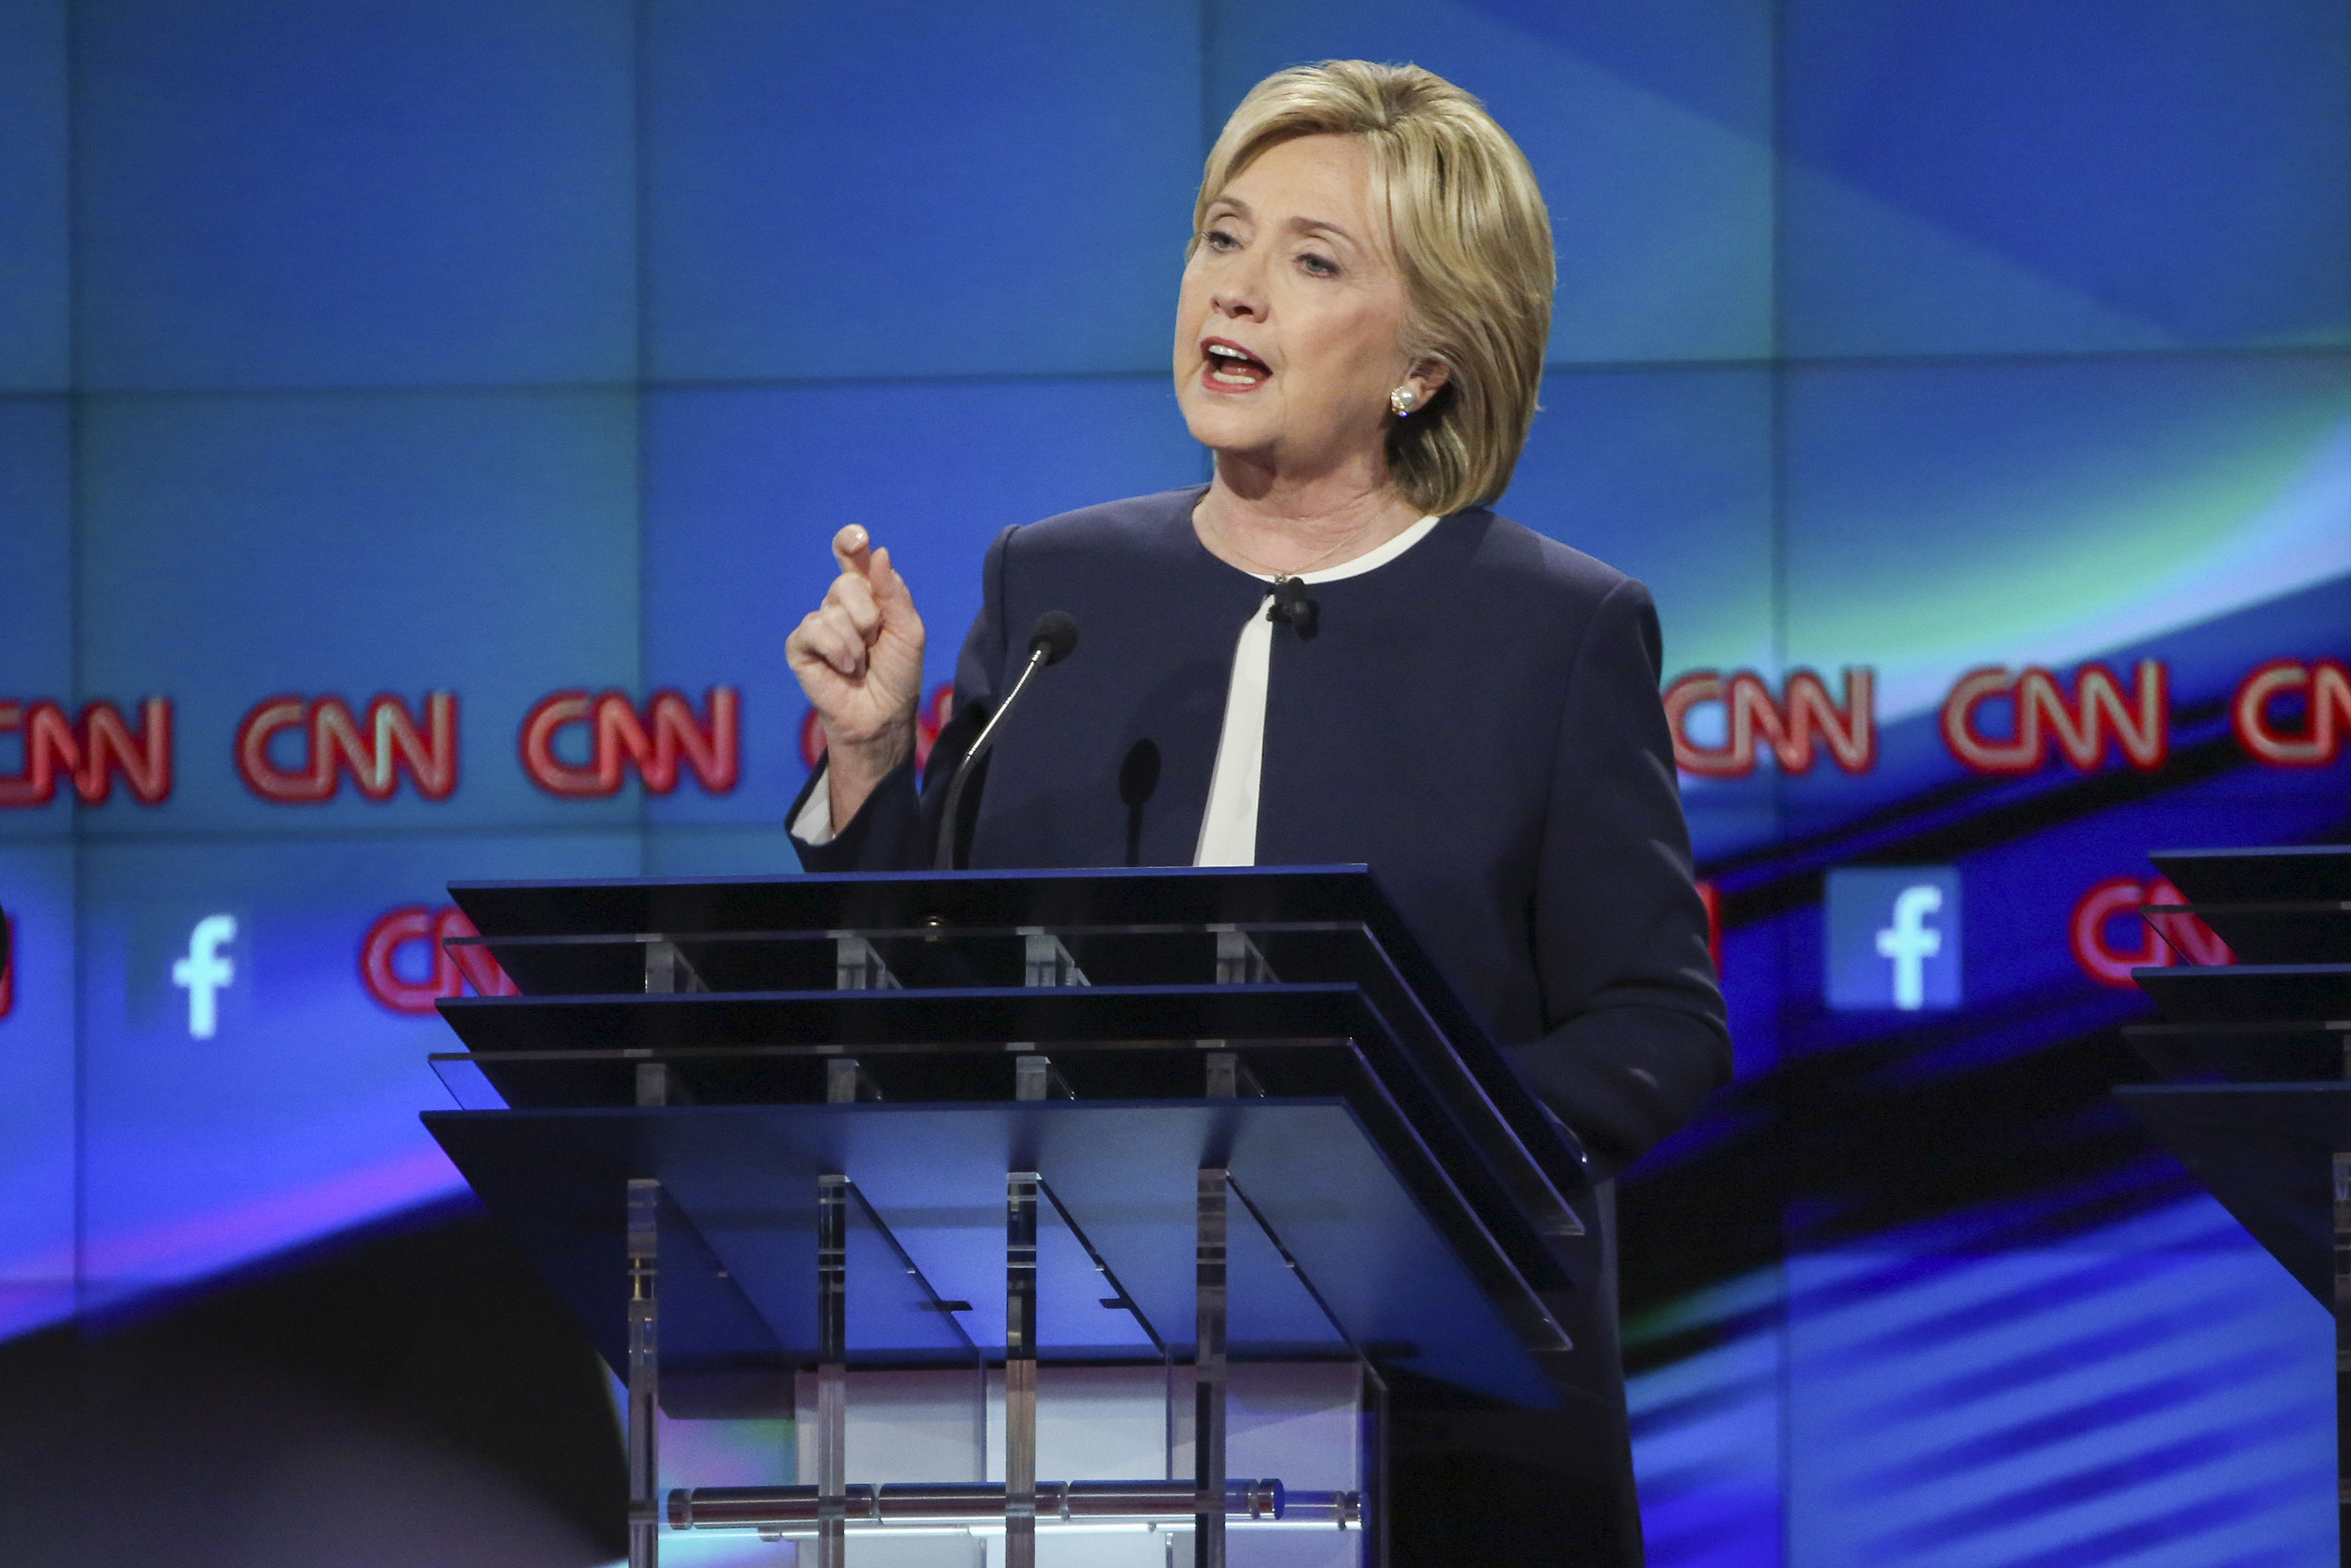 Hillary Clinton in the first Democratic presidential debate in Las Vegas on Oct. 13